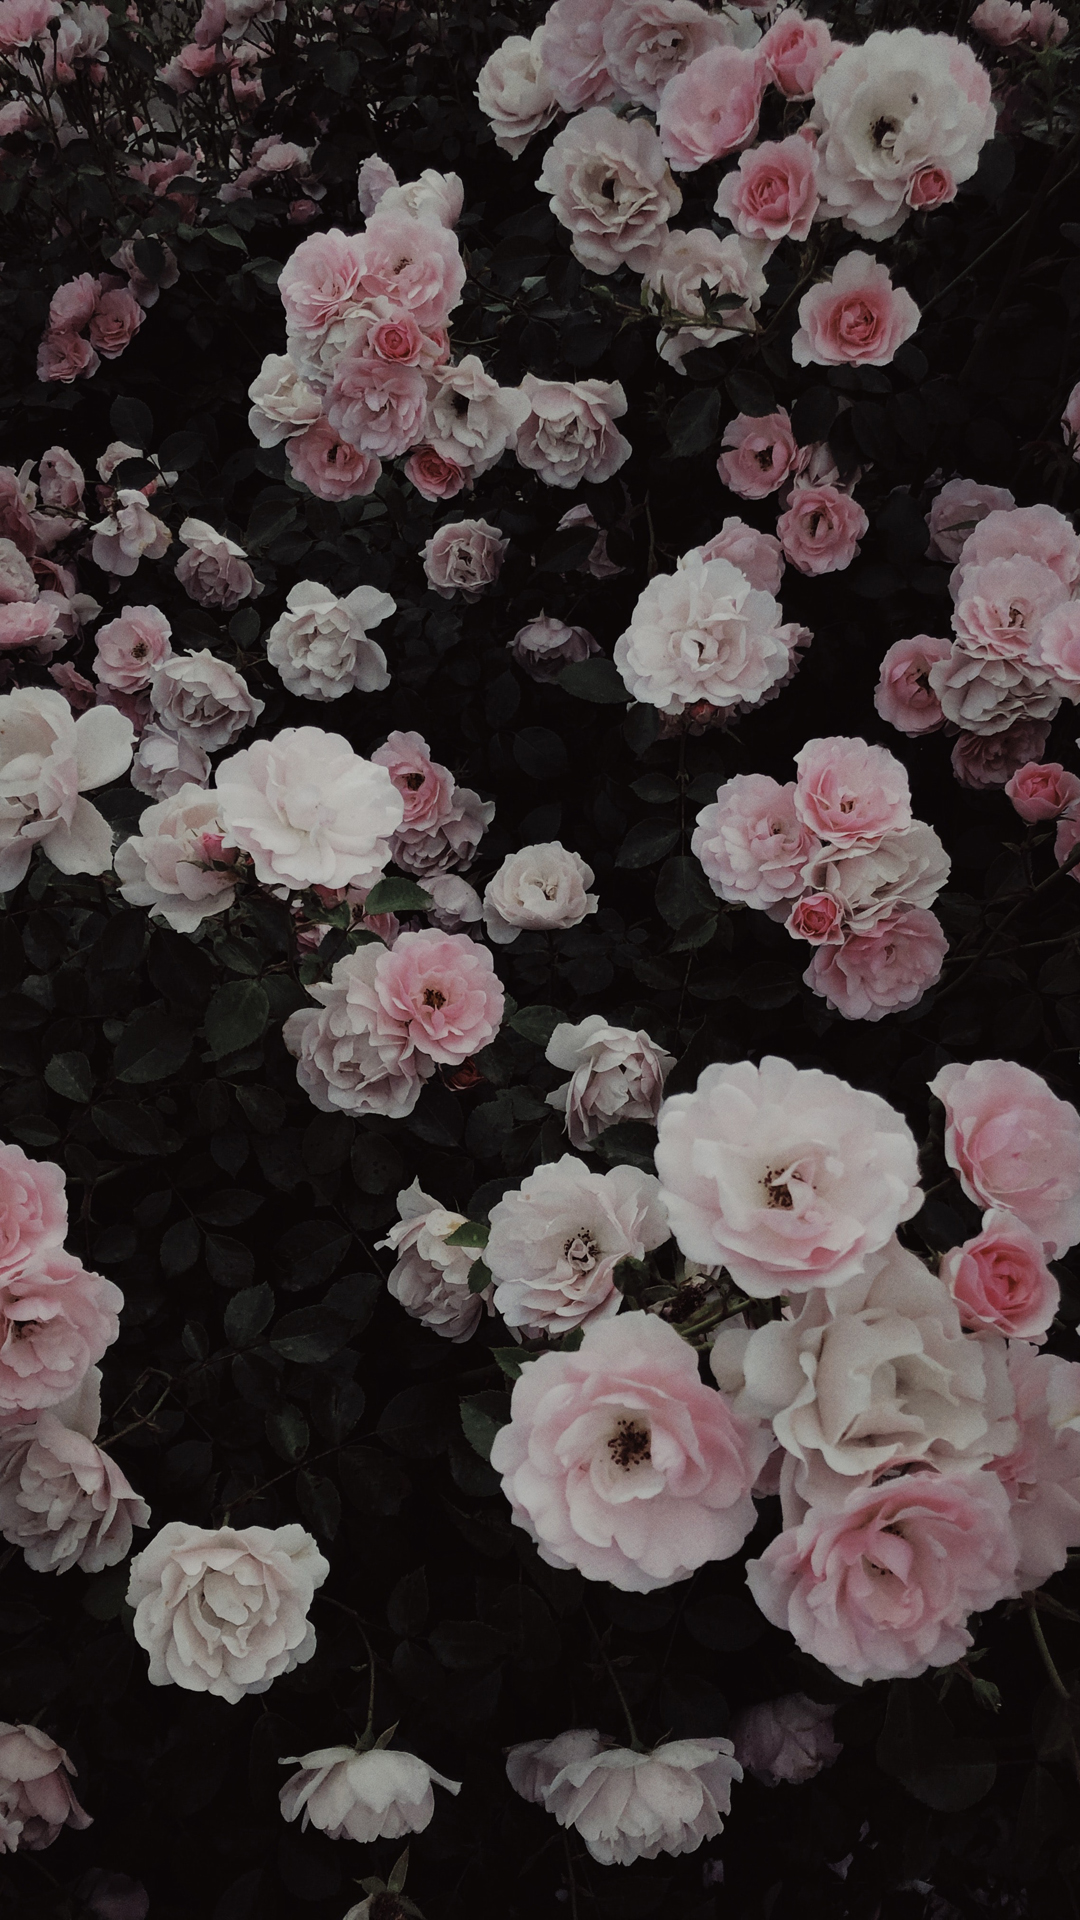 pink rose aesthetic wallpaper for iPhone